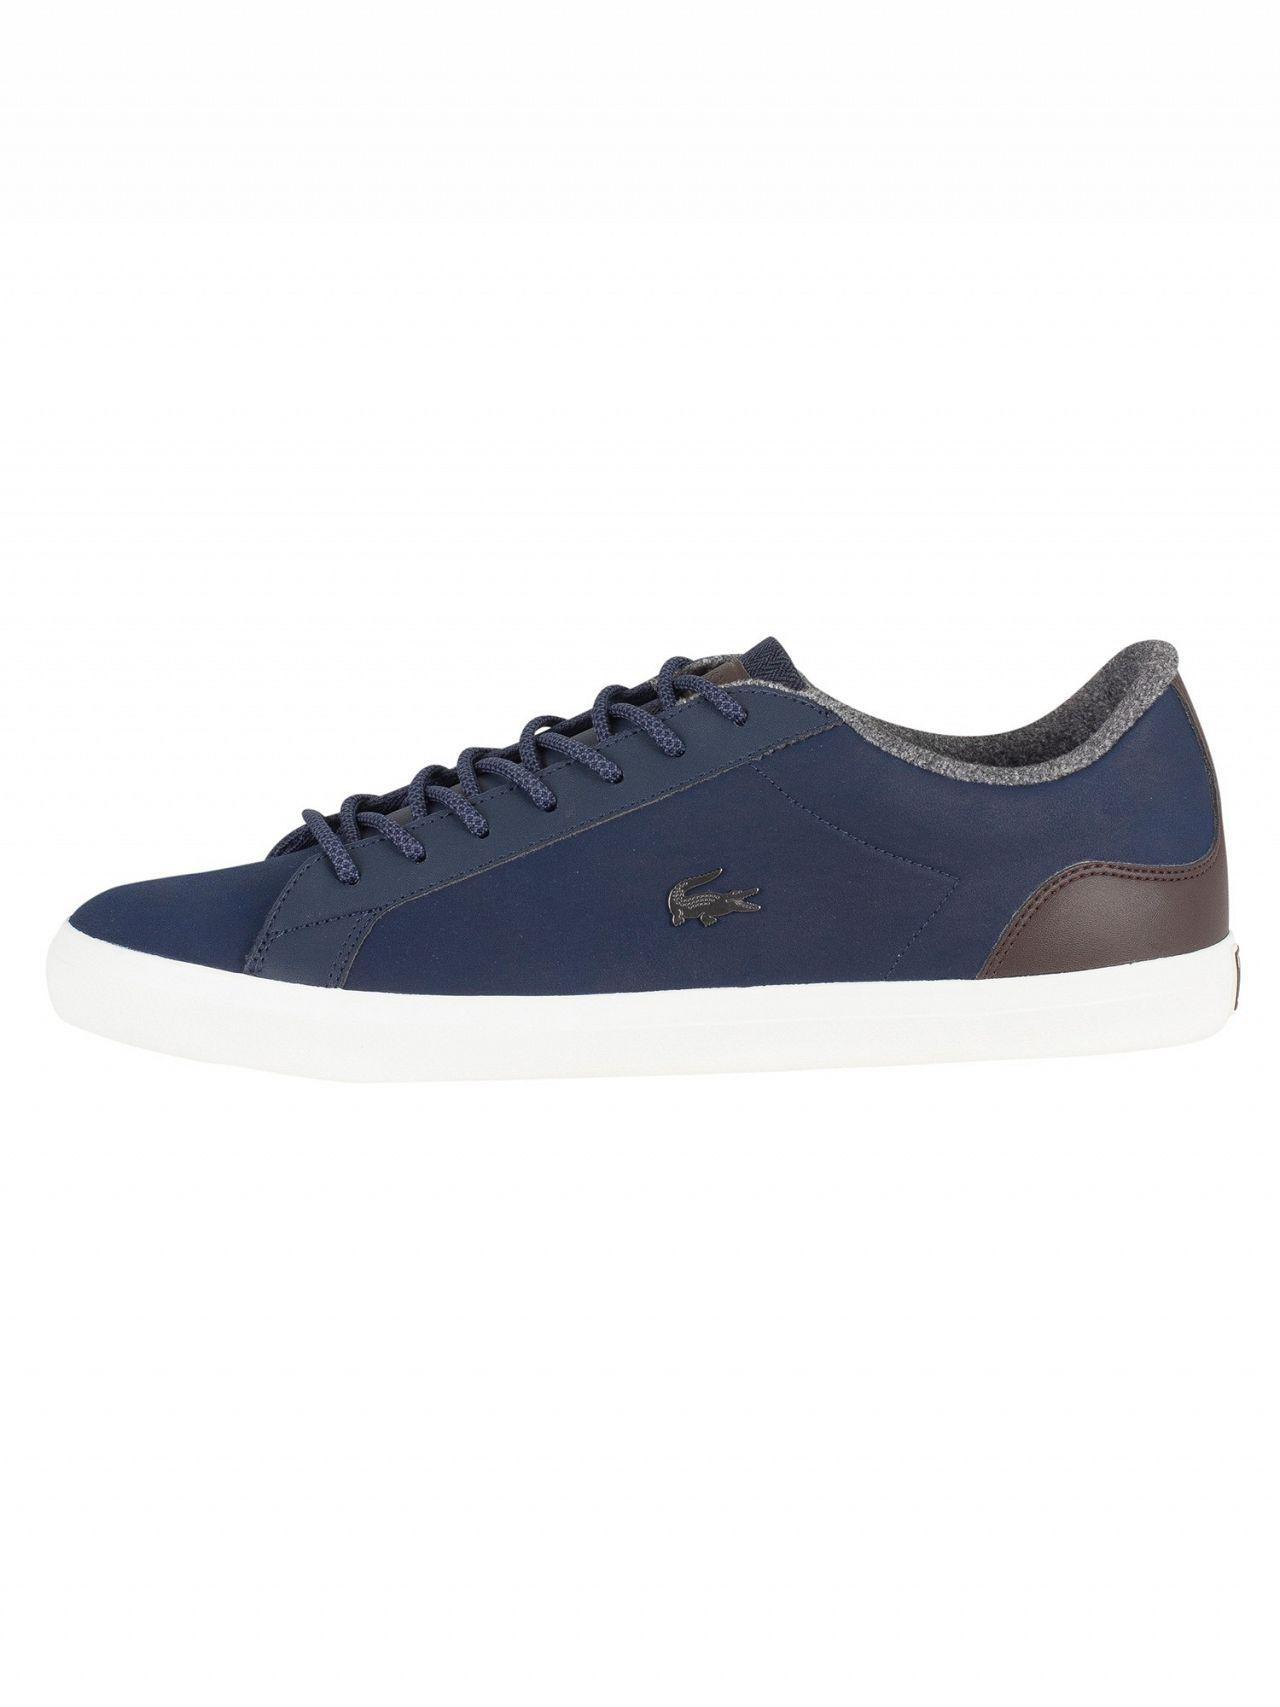 6a5505ad60a45 Lacoste - Men s Lerond 318 2 Cam Leather Trainers